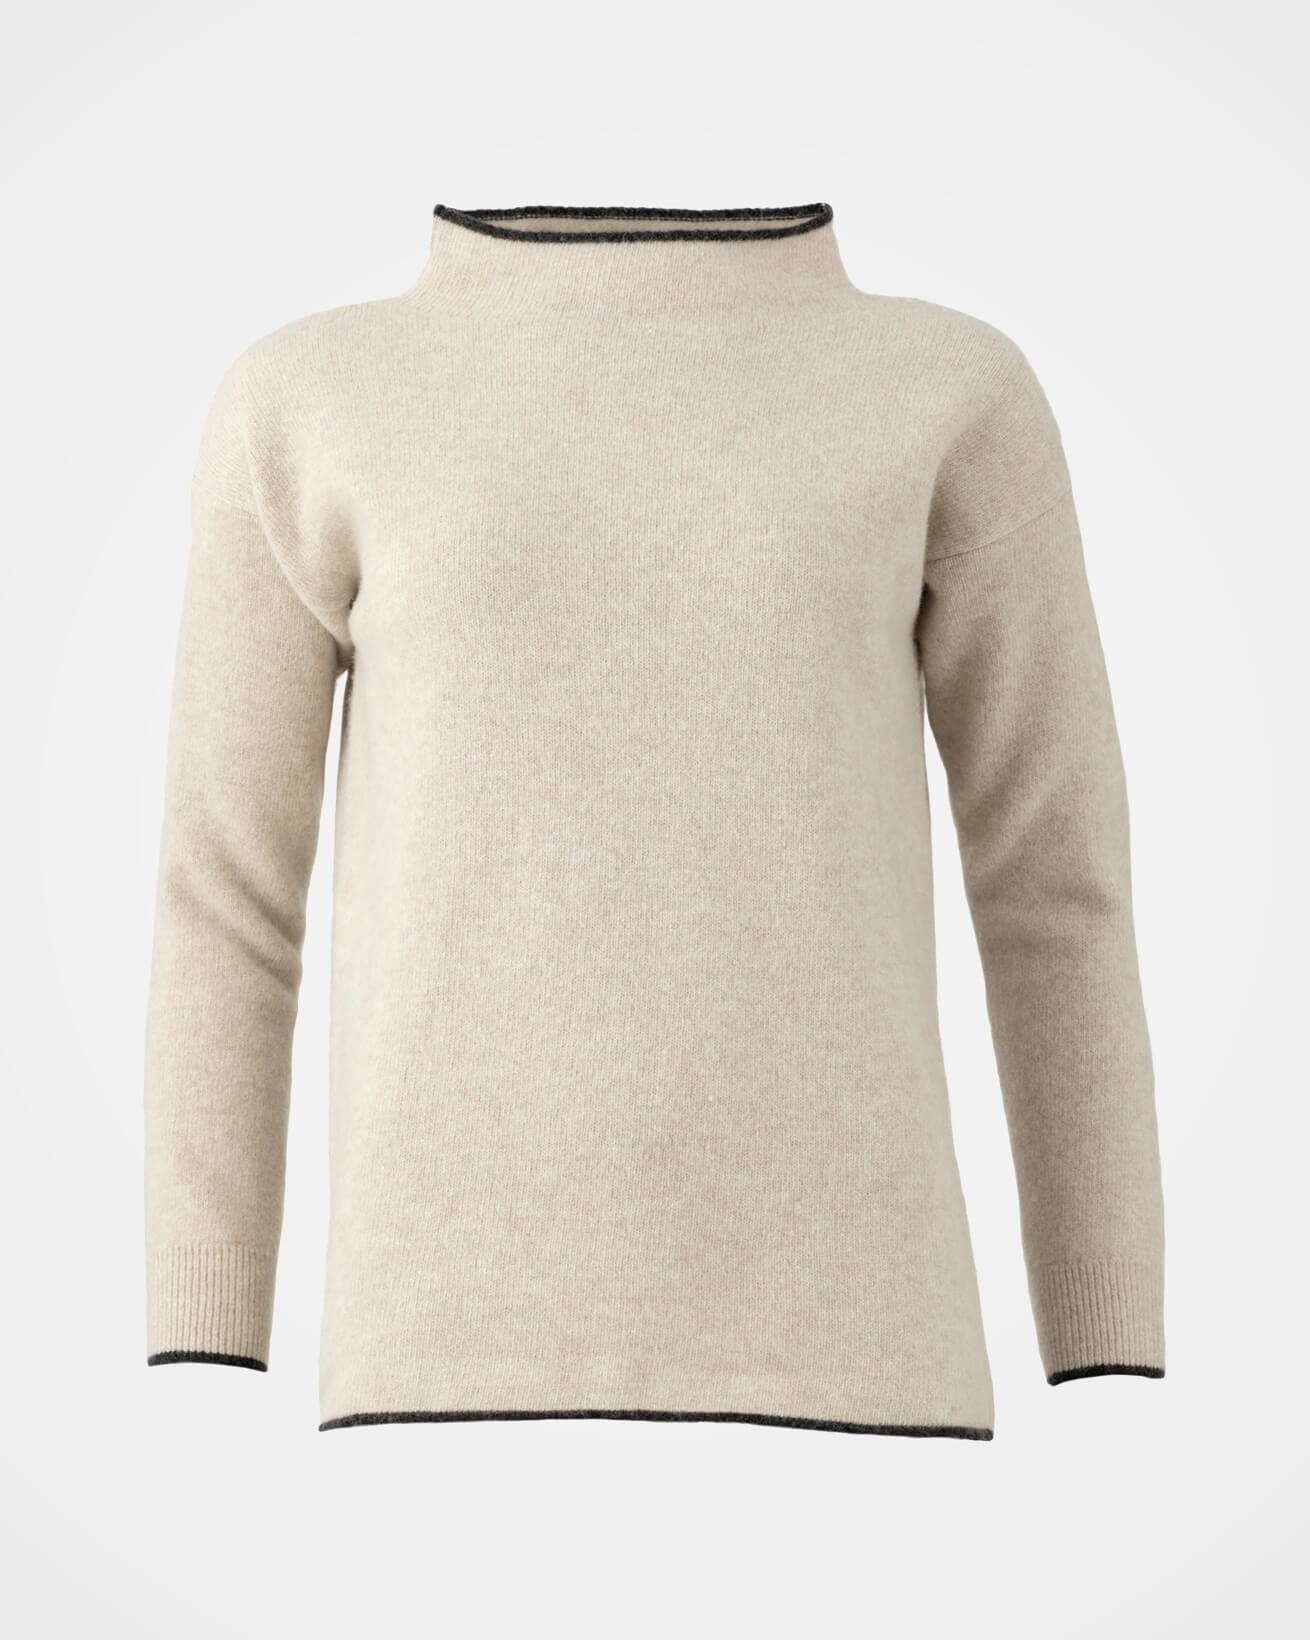 7400_felted-funnel-neck-jumper_oatmeal-charcoal_front_web.jpg